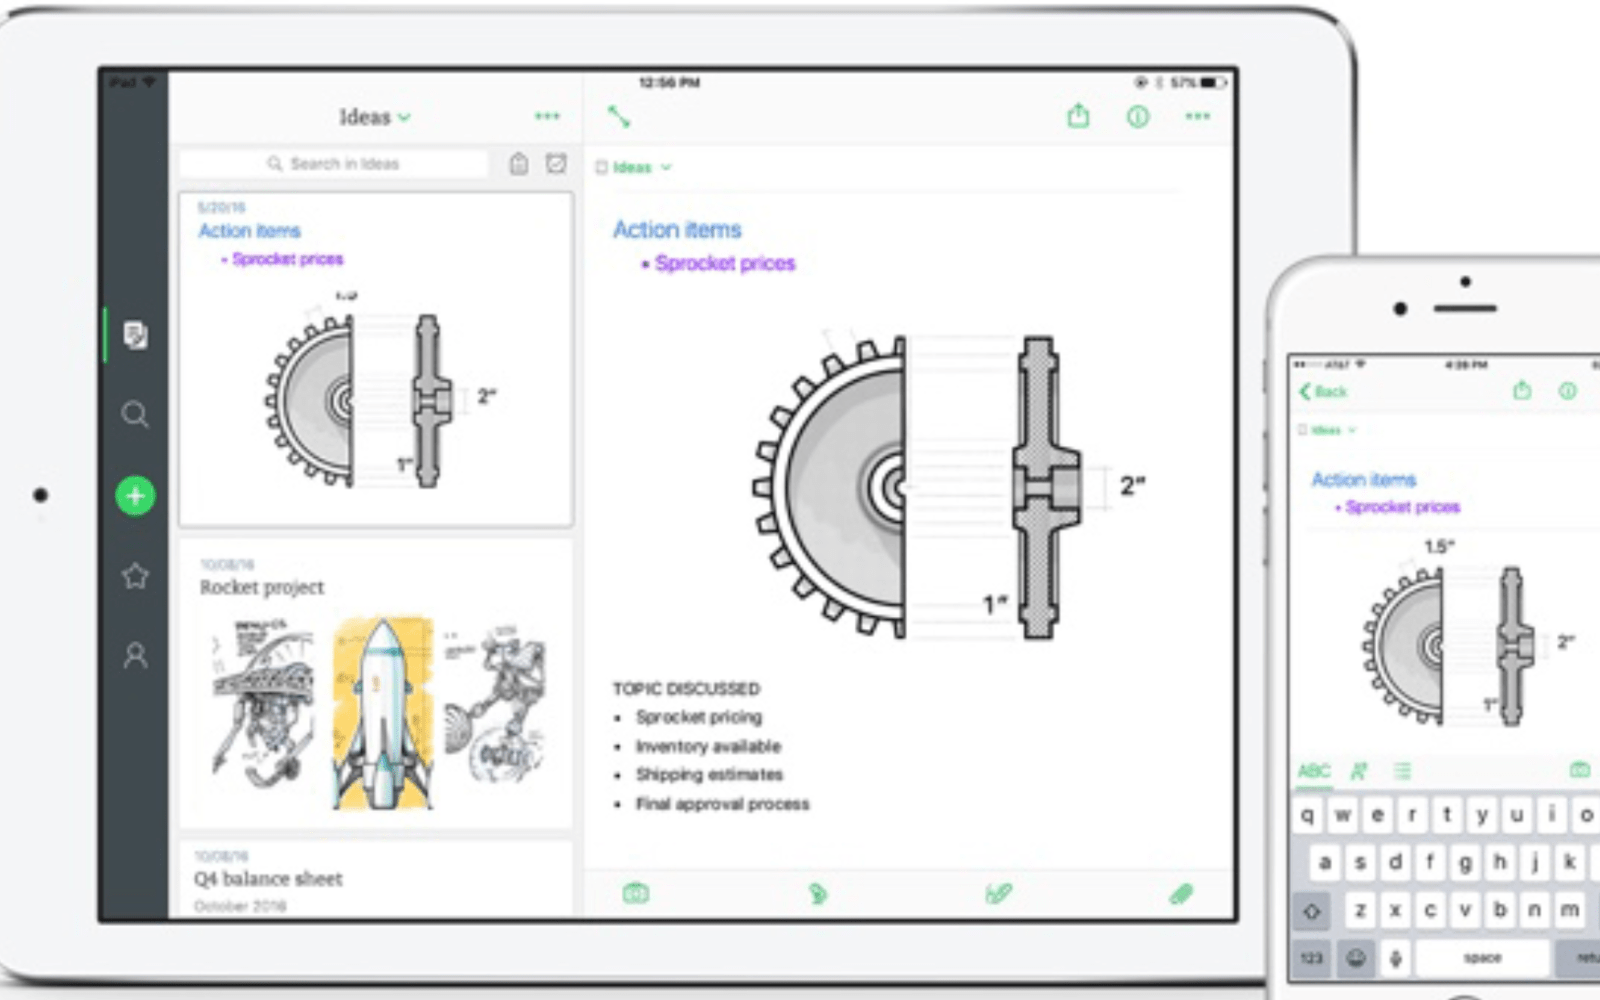 Evernote for iOS updated with interface refresh, navigation improvements, and more